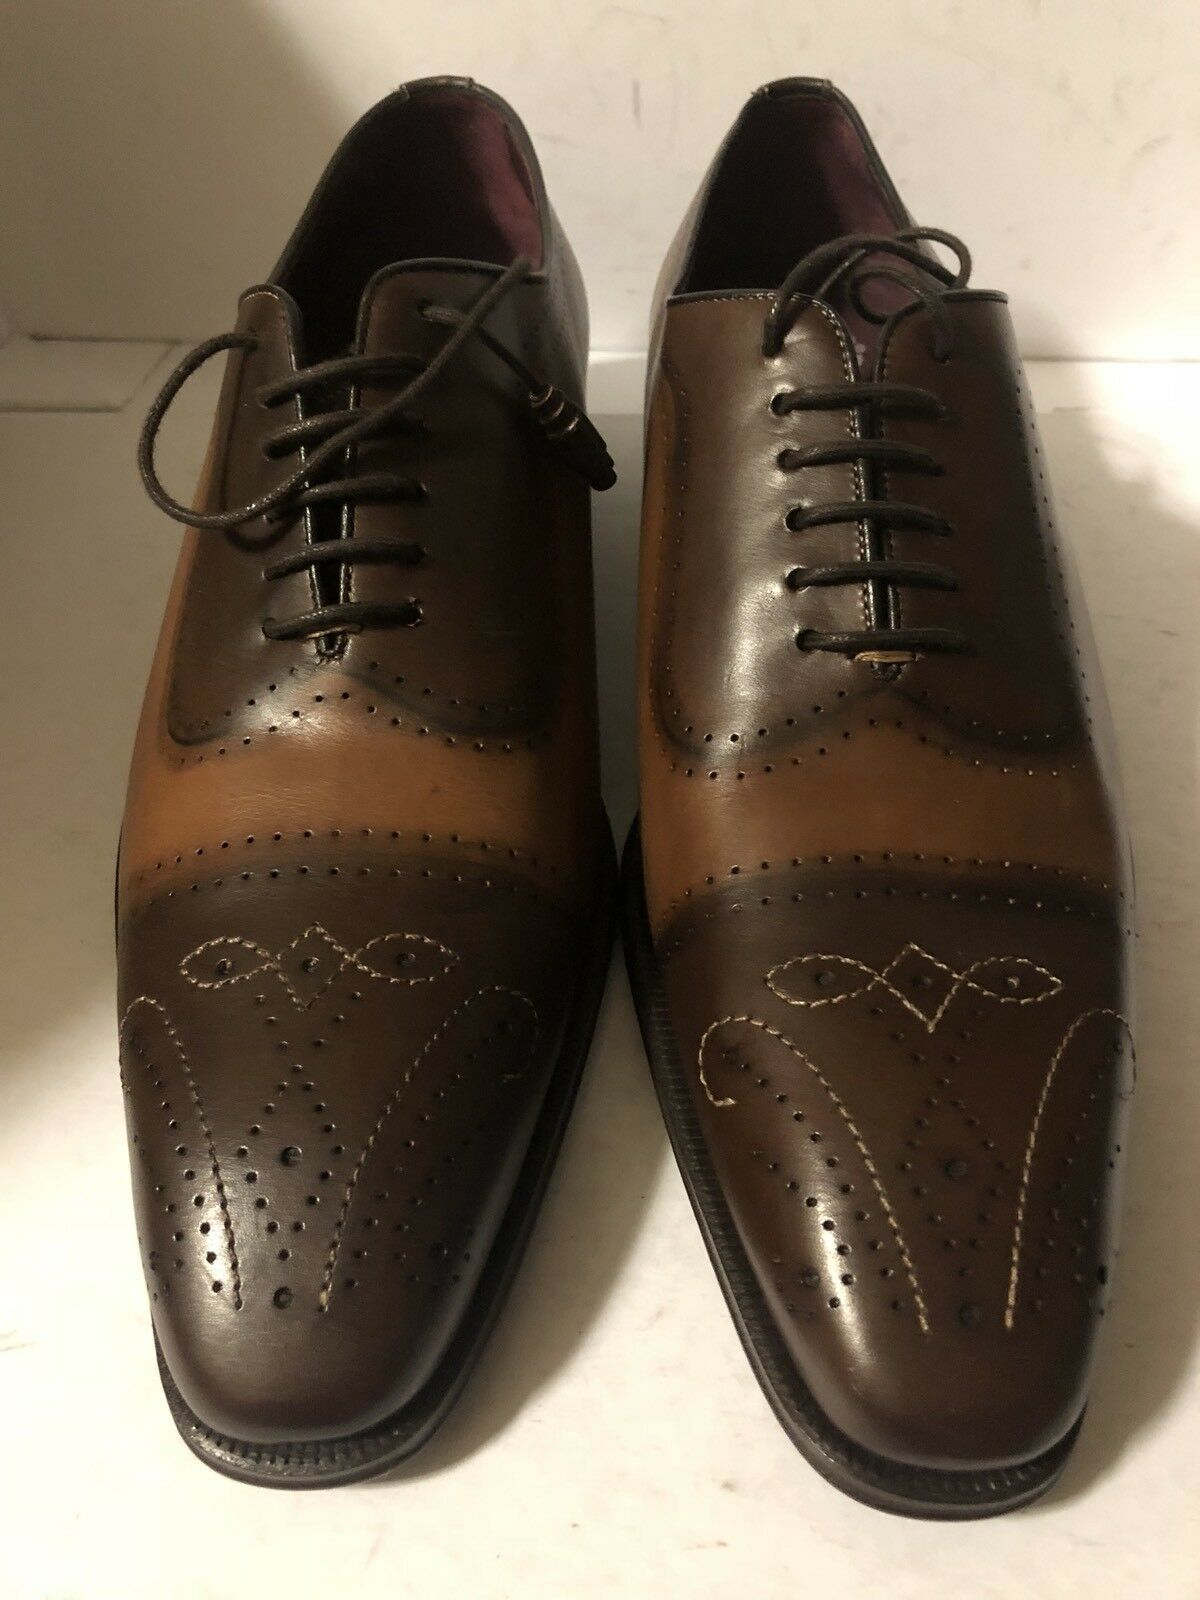 Men's Mezlan Serrano Leather Brogue Oxford scarpe Sz 10  595